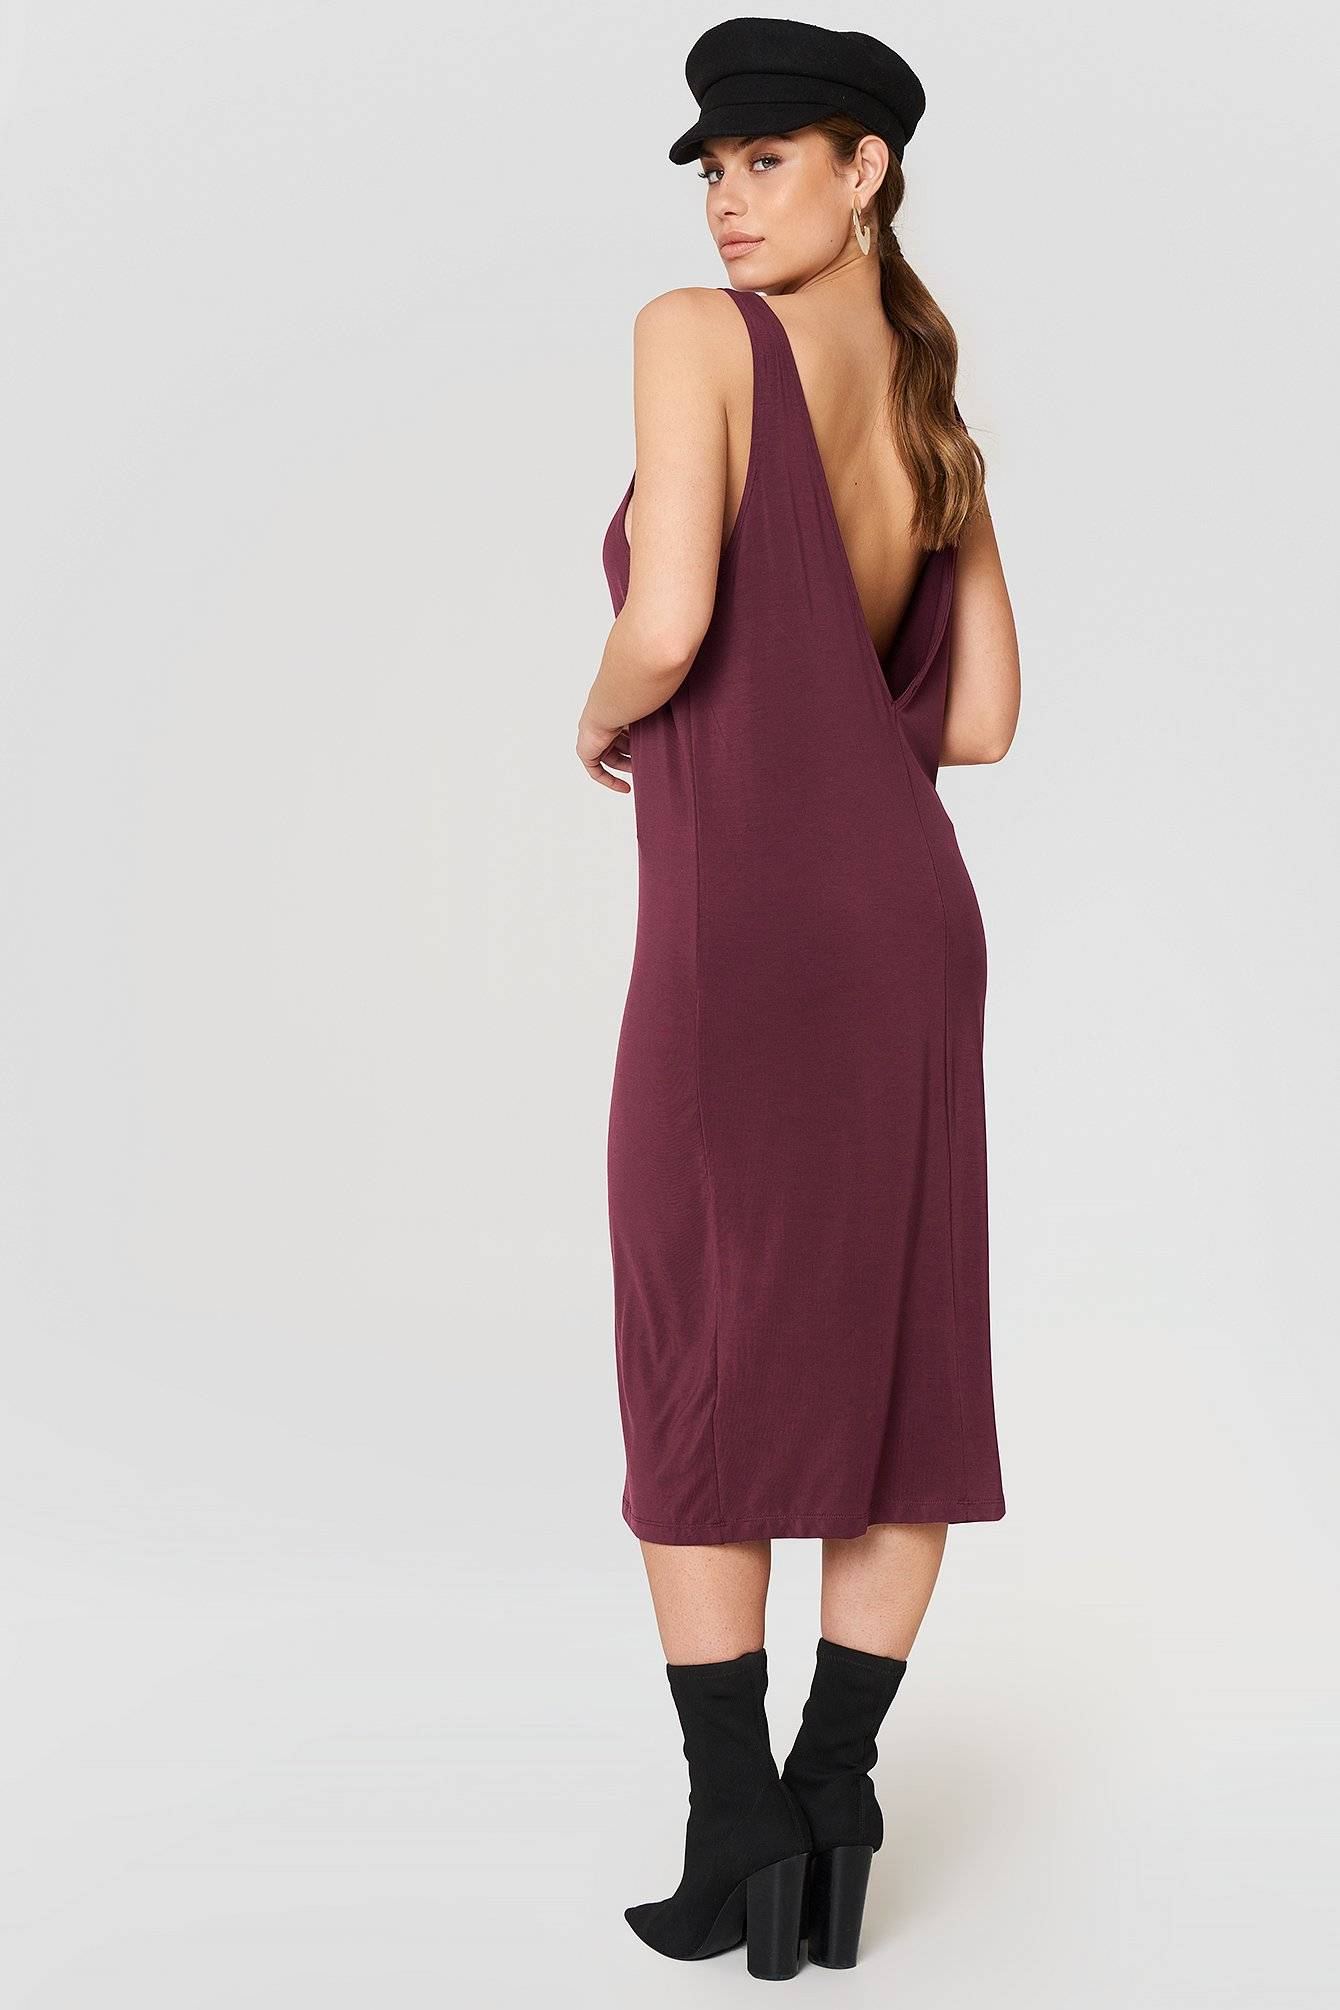 Dr Denim Natalia Dress - Red,Purple